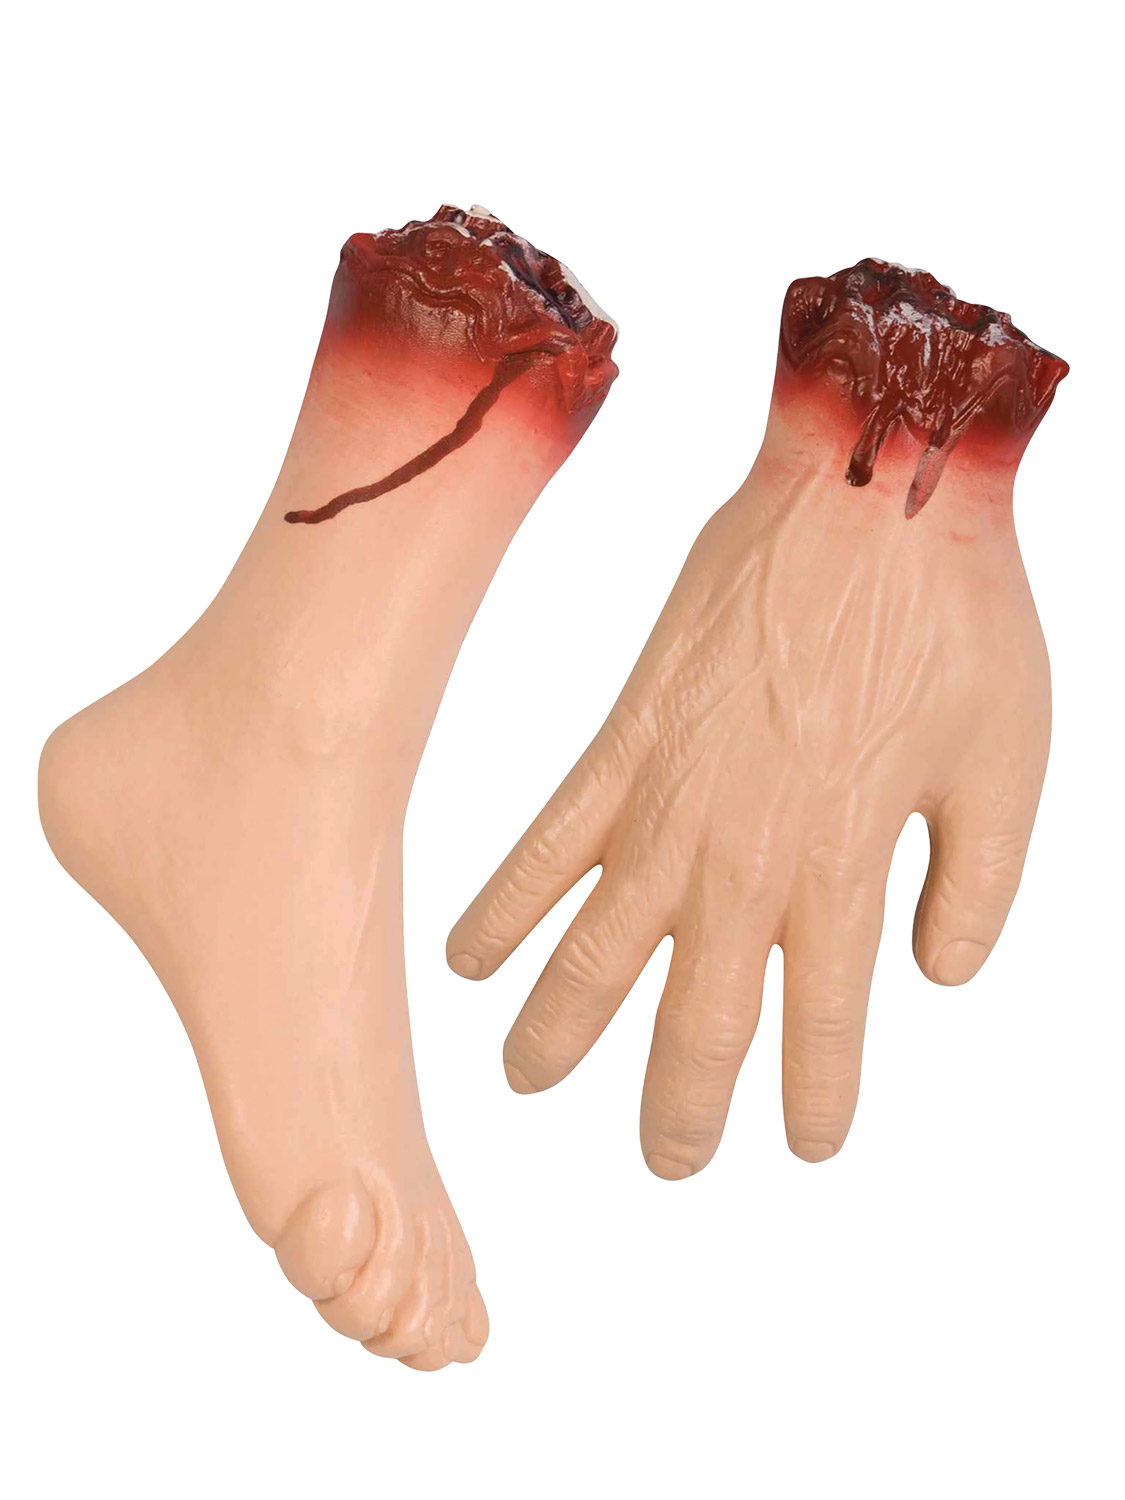 Halloween Cut Off Body Parts Bloody Party Prop Decoration Hand Arm Foot Fingers